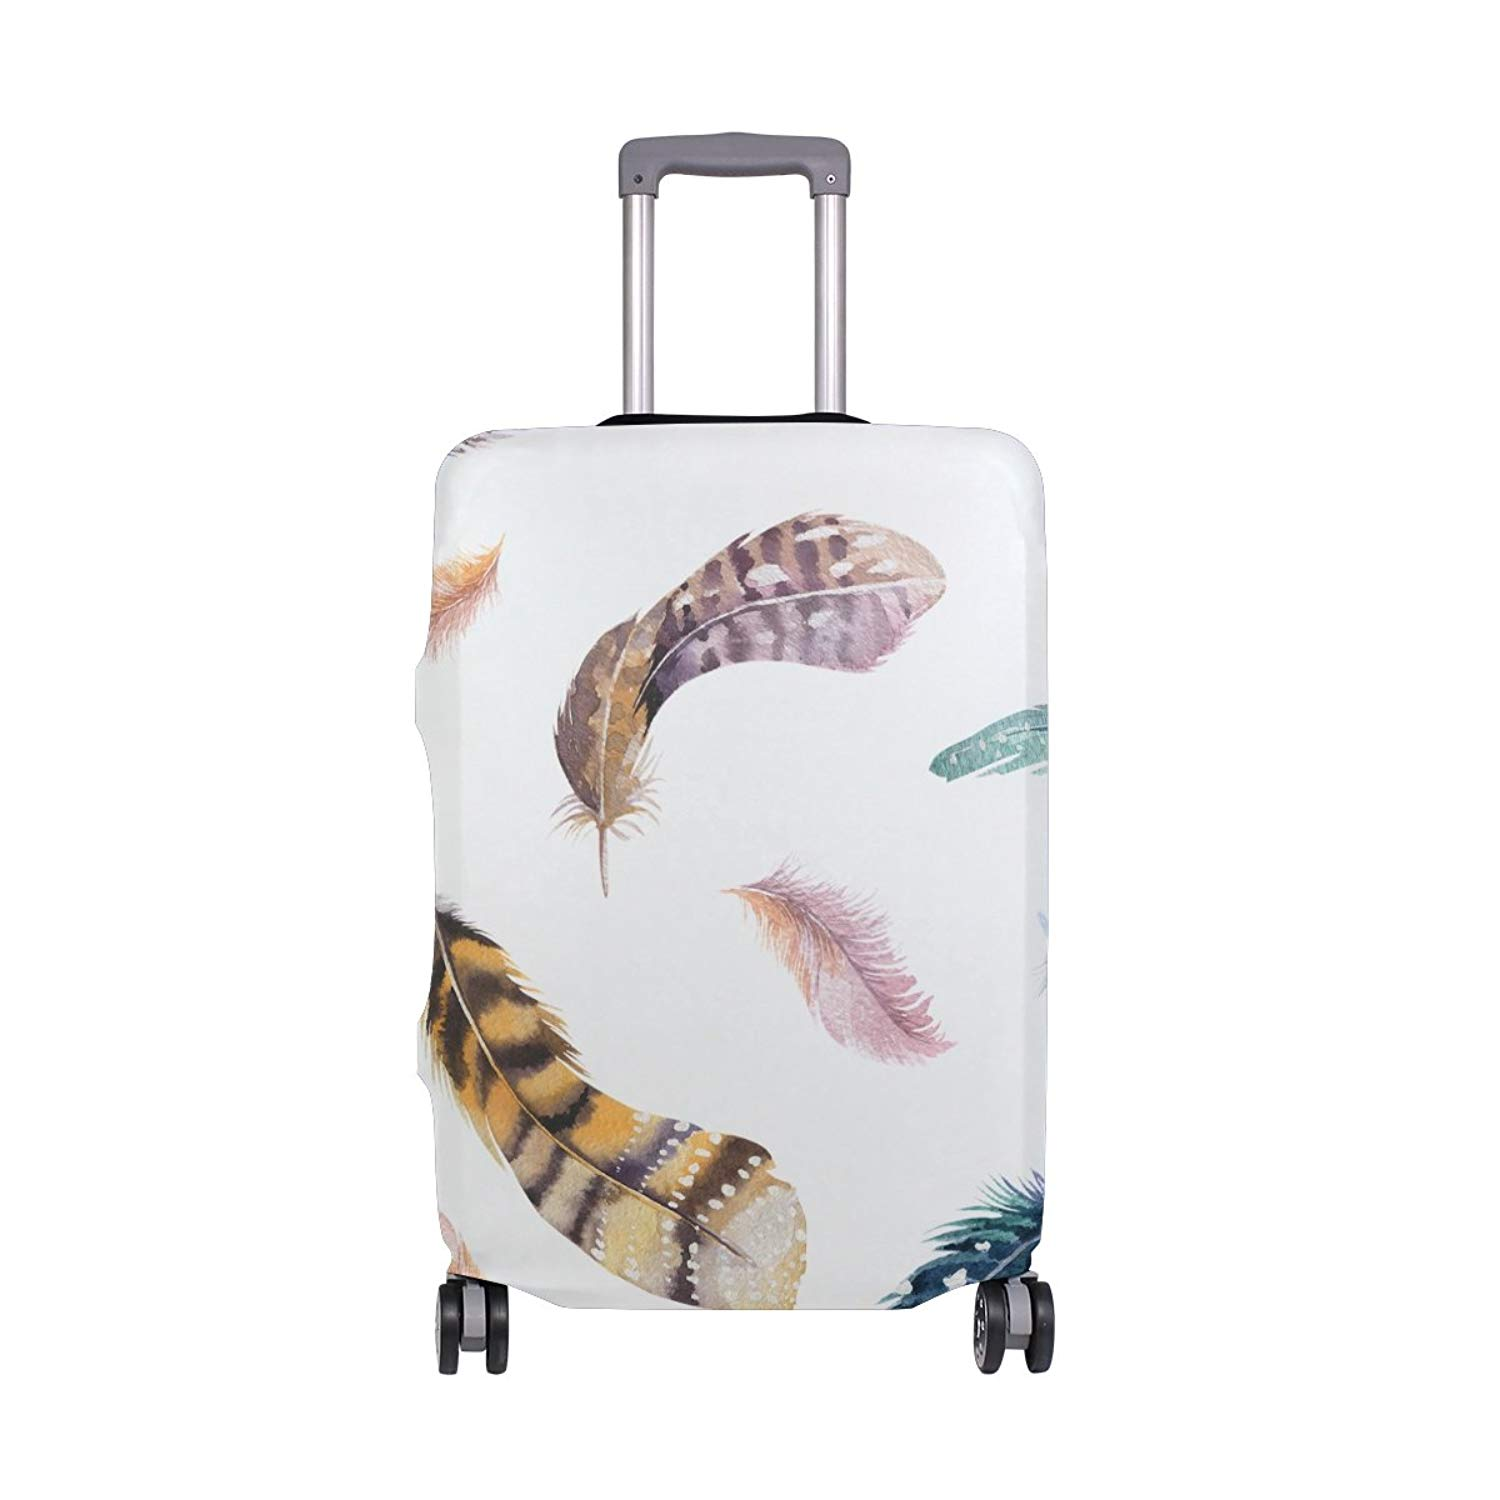 GIOVANIOR Polar Bear Baby Luggage Cover Suitcase Protector Carry On Covers